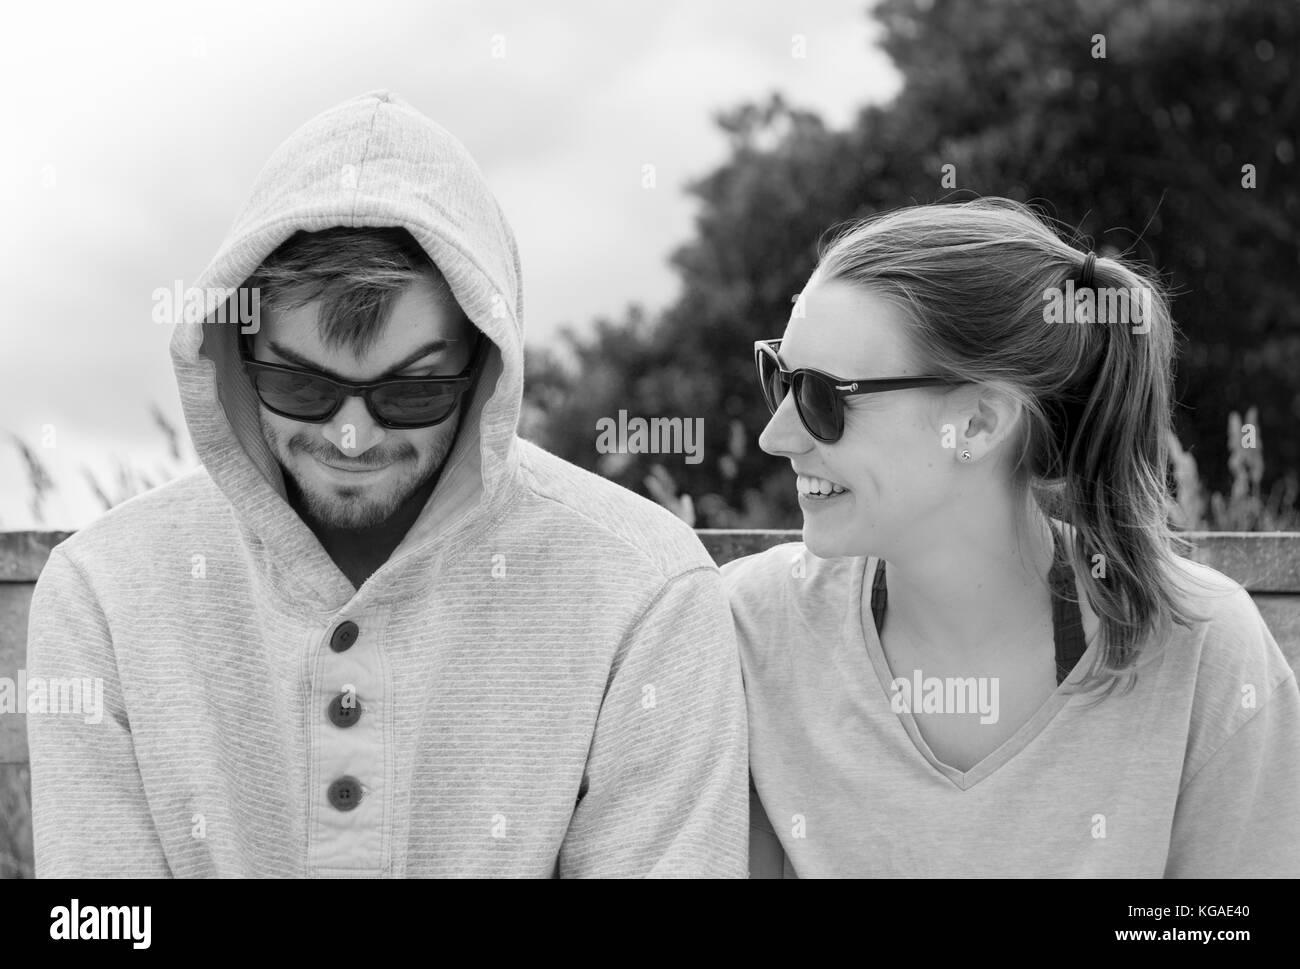 Sharing a moment - Stock Image